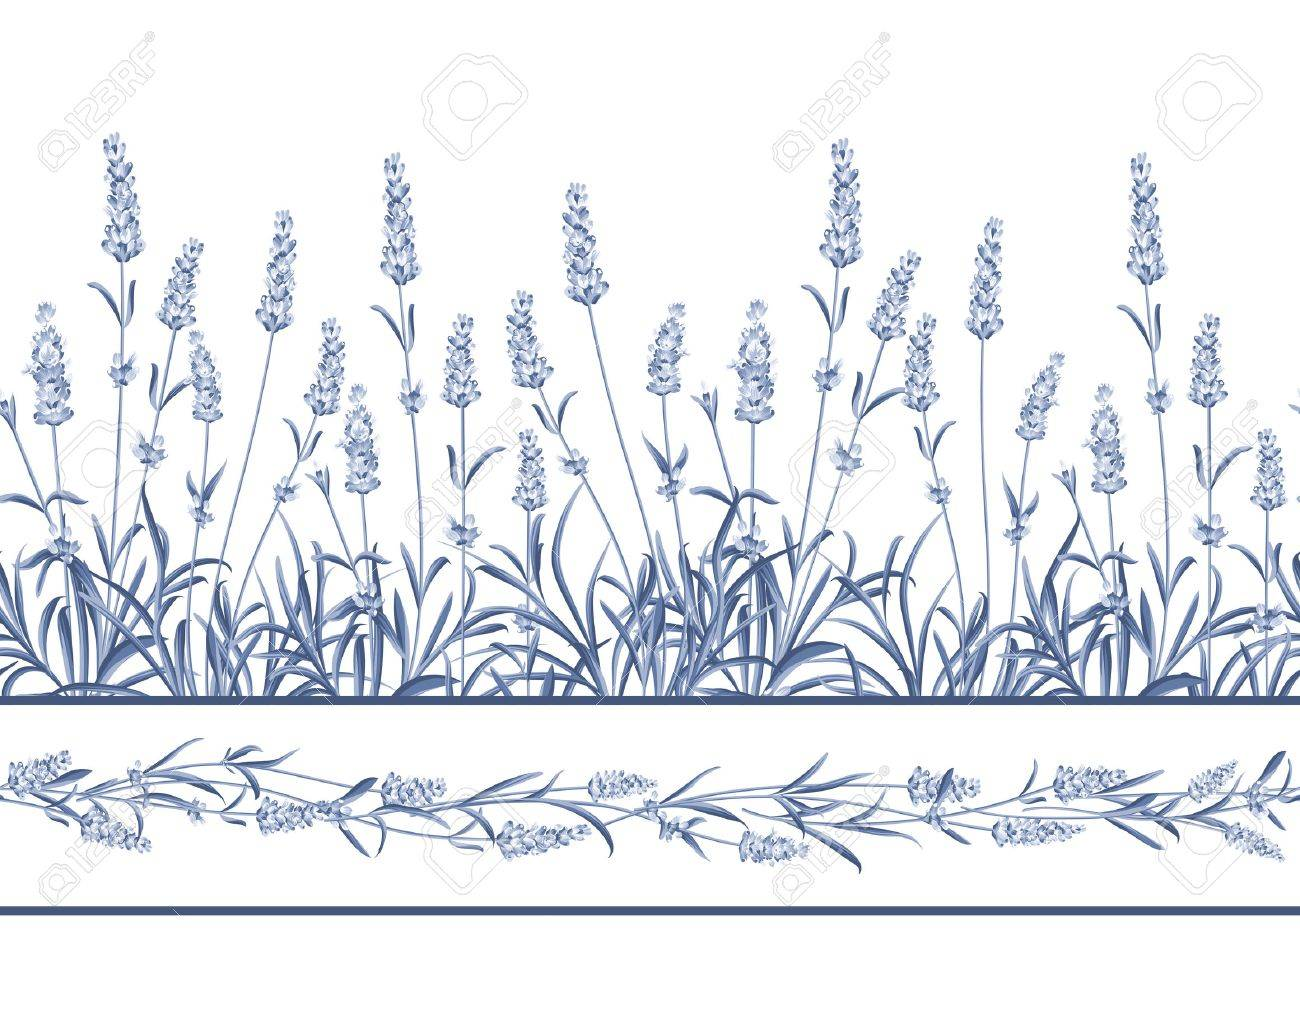 The Lavender Seamless frame line. Bunch of lavender flowers on a white background. Vector illustration. - 50921312